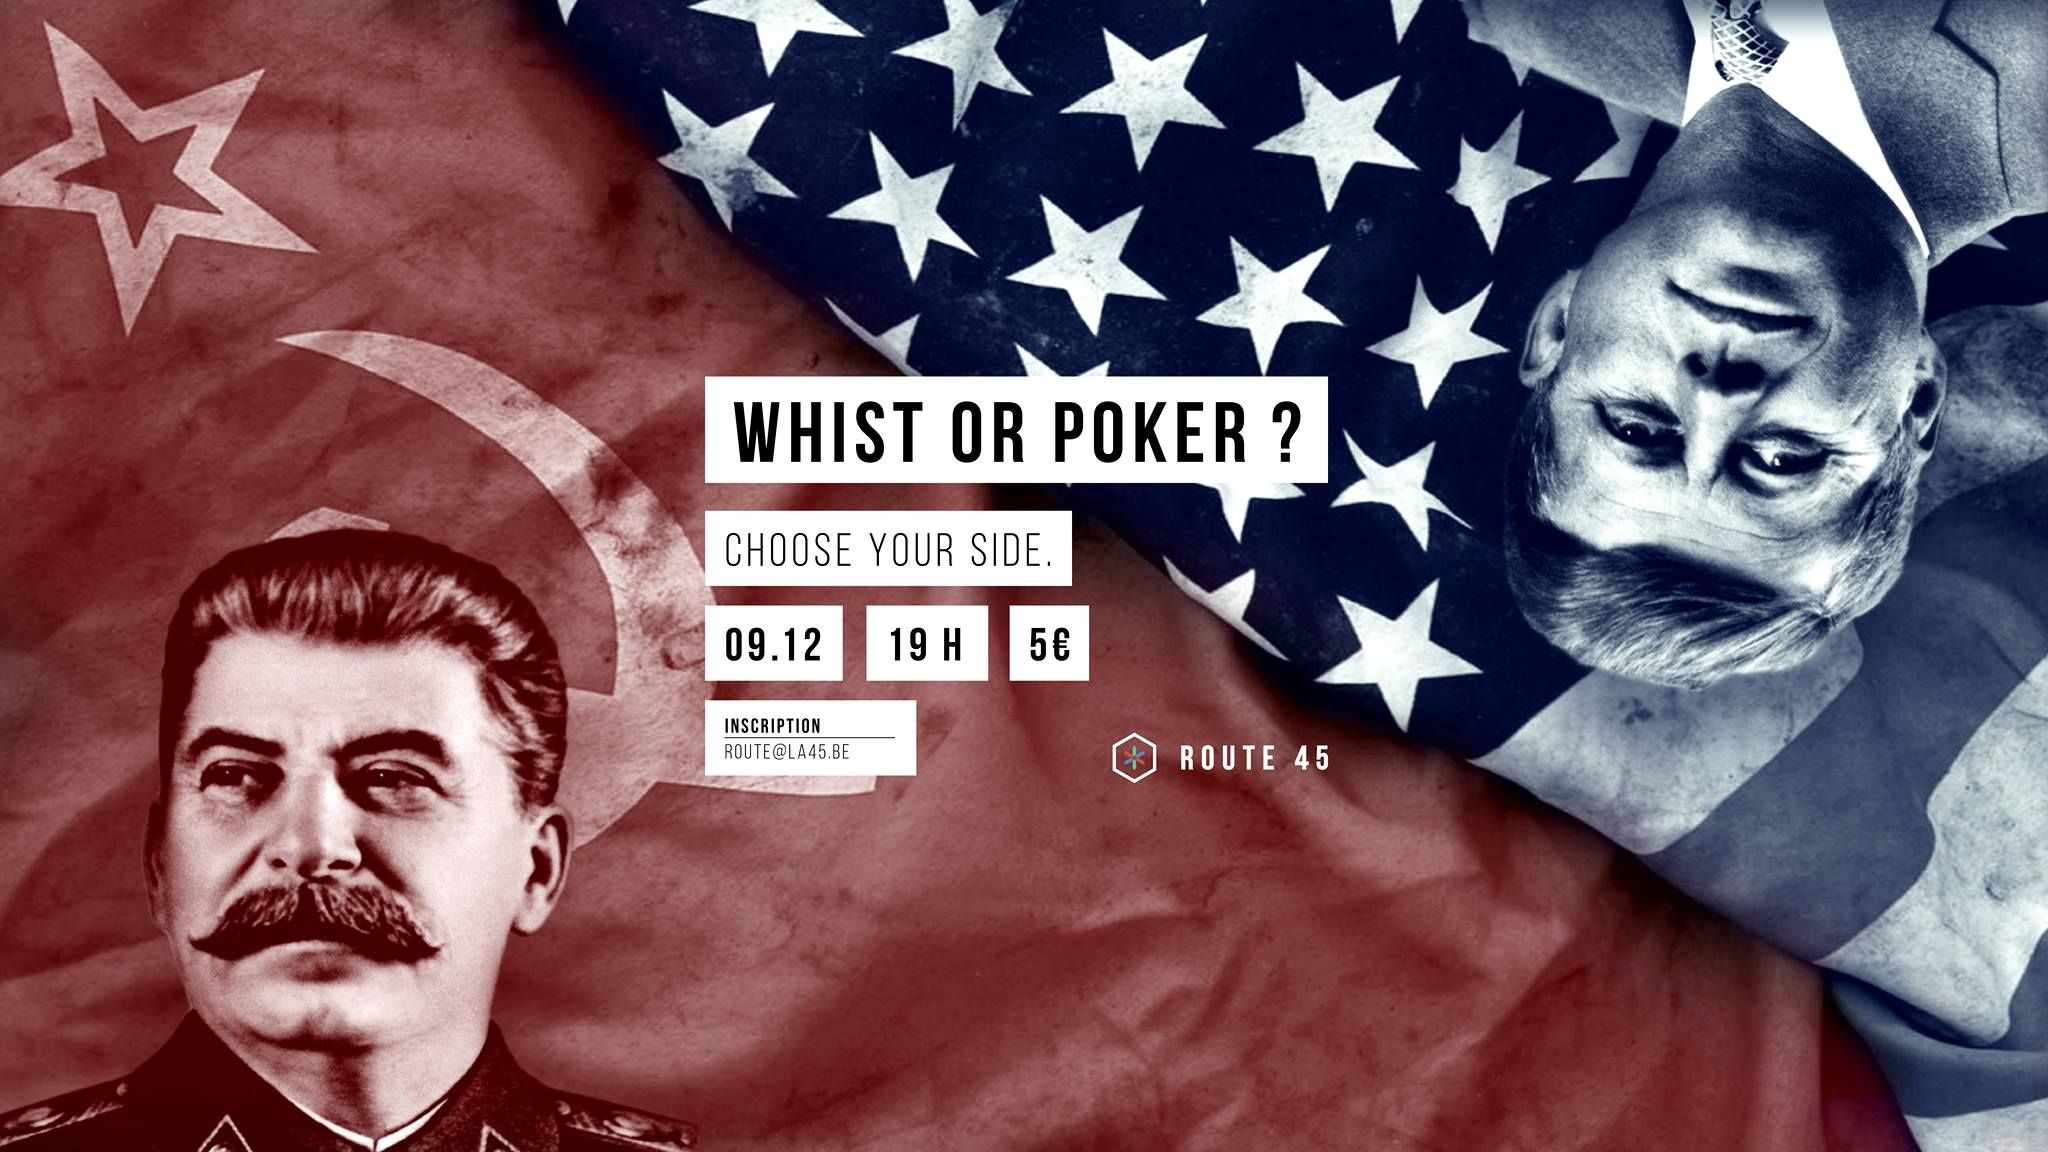 Whist or Poker ?